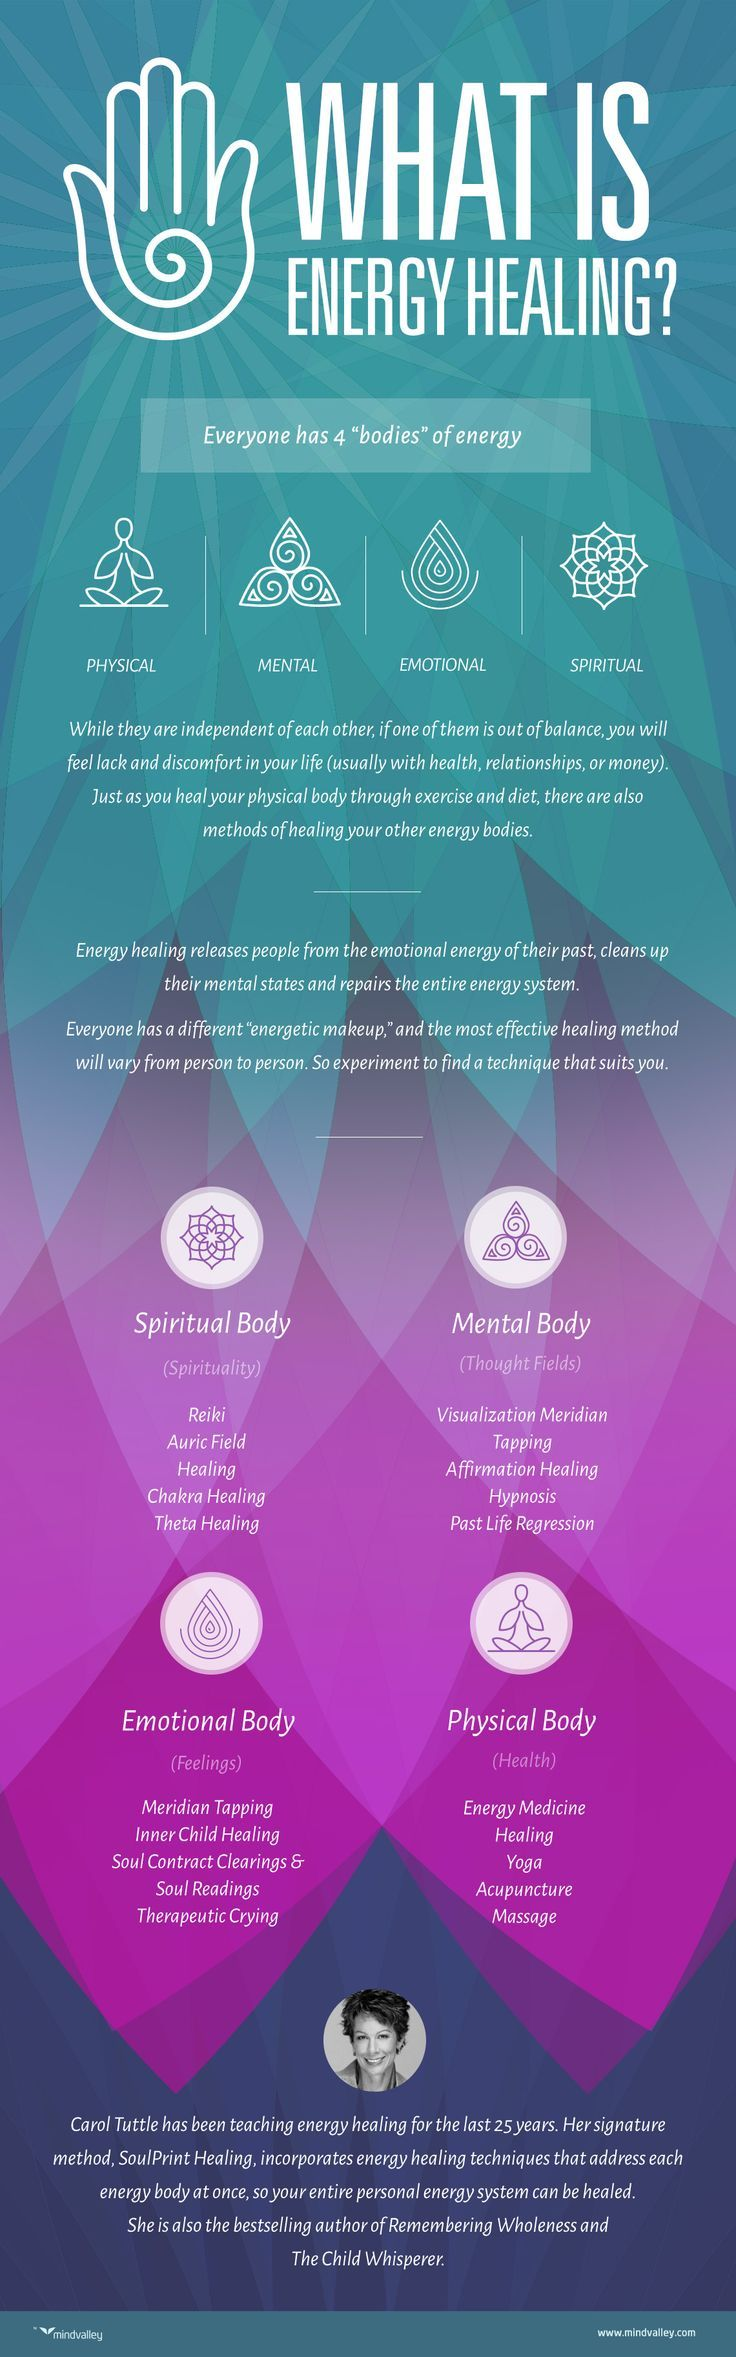 "What Is Energy Healing? With so many different approaches and techniques discovered over the century, the term ""energy healing"" has grown in meaning. We spoke to Carol Tuttle, America's most trusted energy healer, to help us understand the basics of this complex subject. selfimprove.co/..."